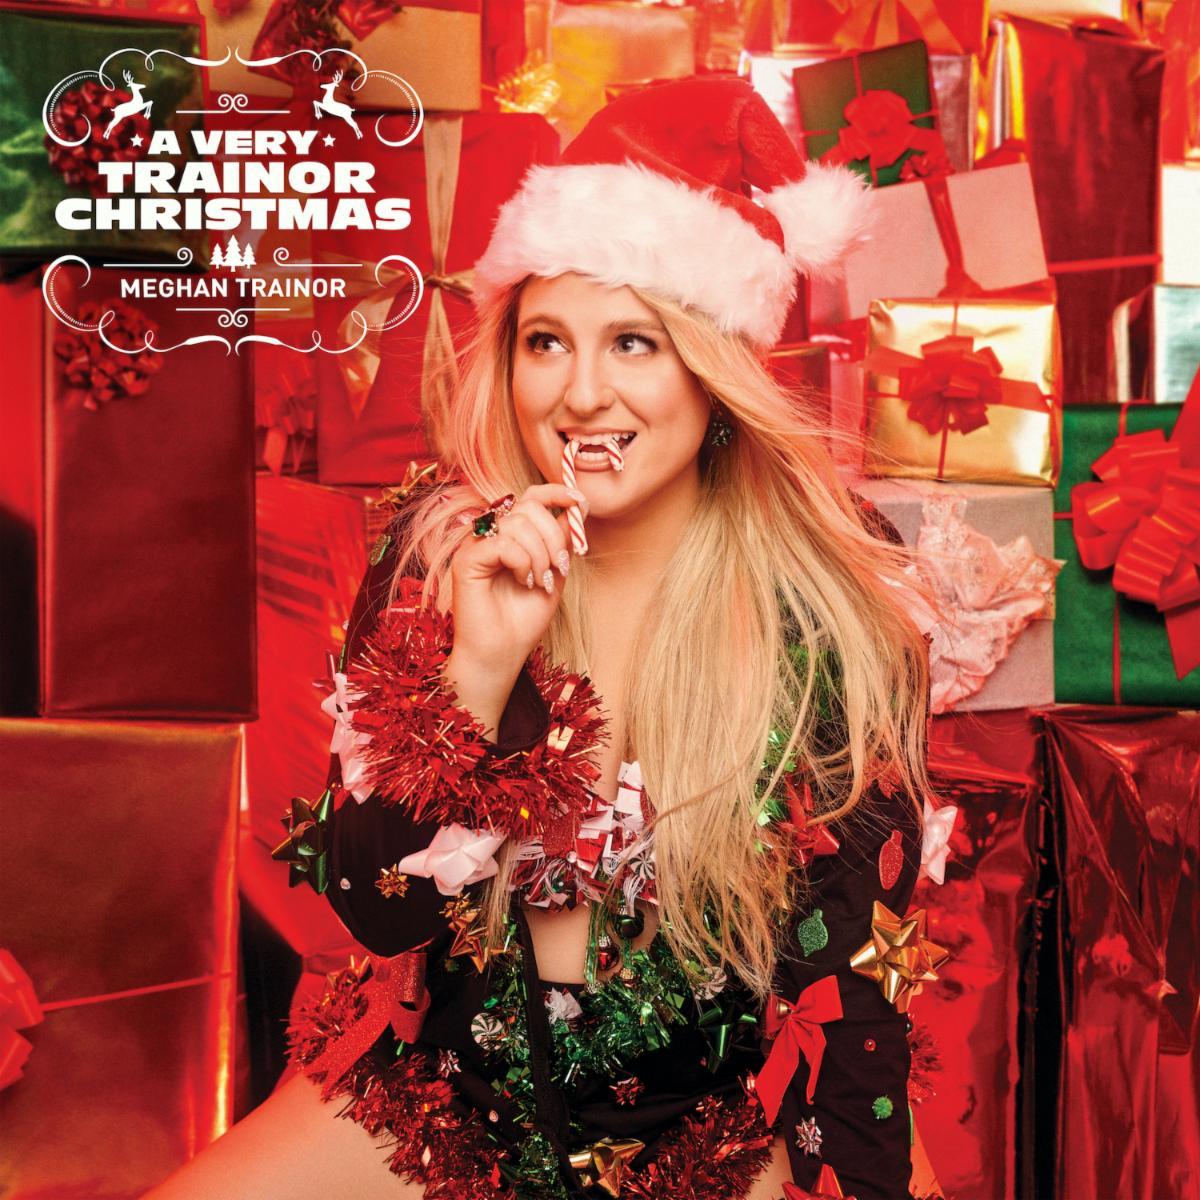 Meghan Trainor To Release 'A Very Trainor Christmas' On October